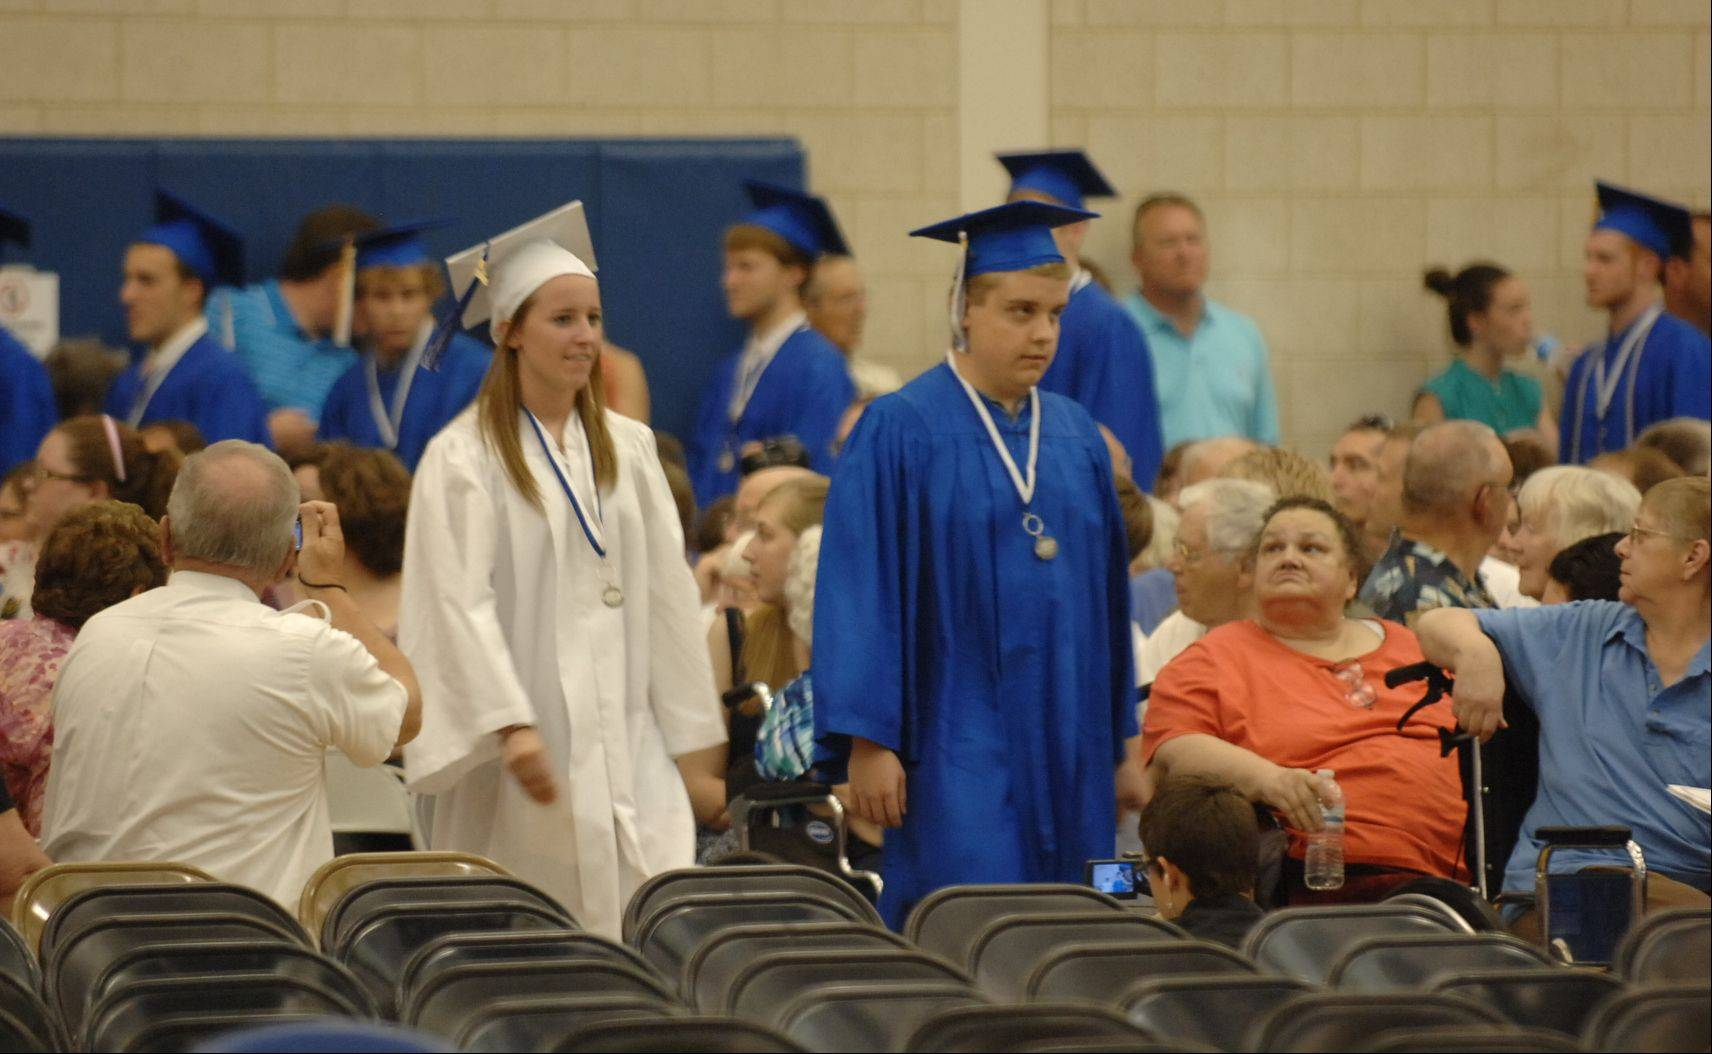 Images from the Geneva High School graduation ceremony Sunday, May 27, 2012.